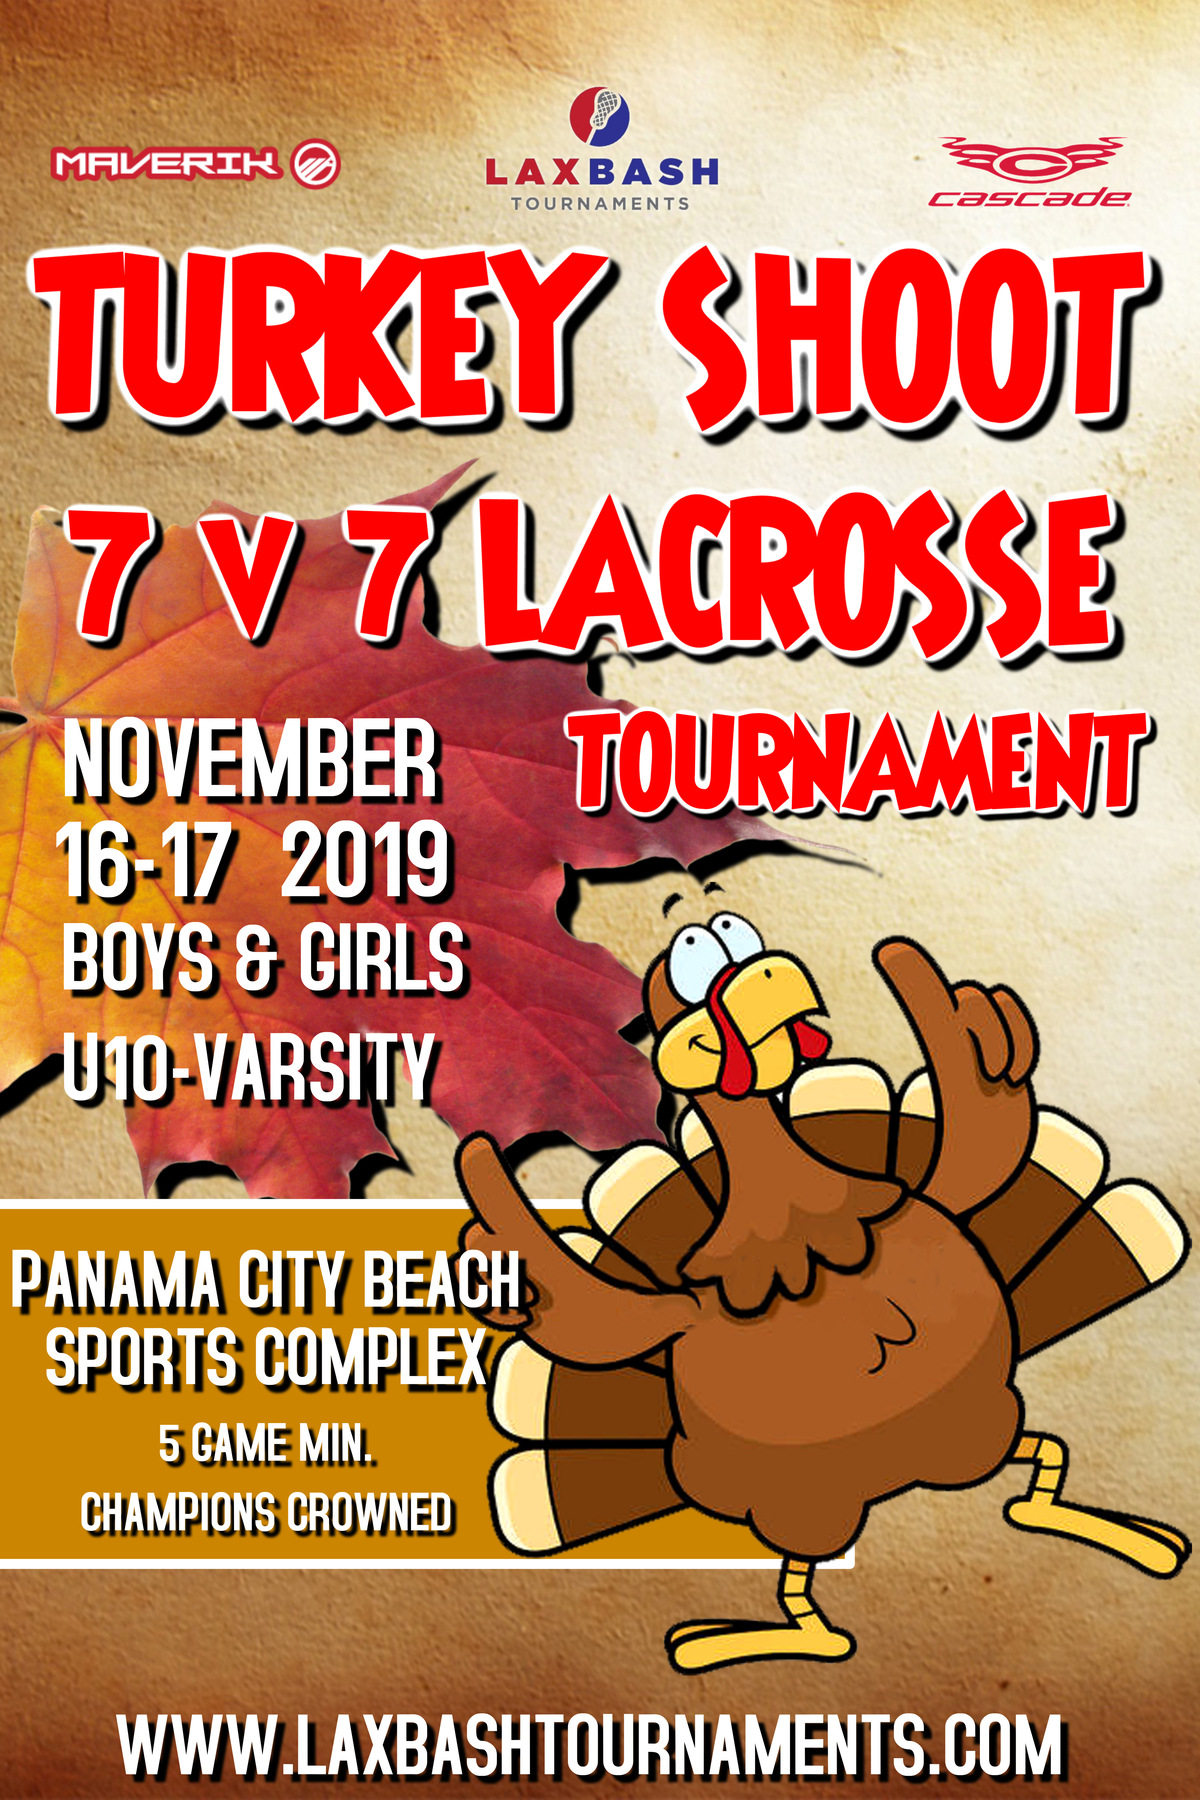 Turkey Shoot 7 v 7.jpg